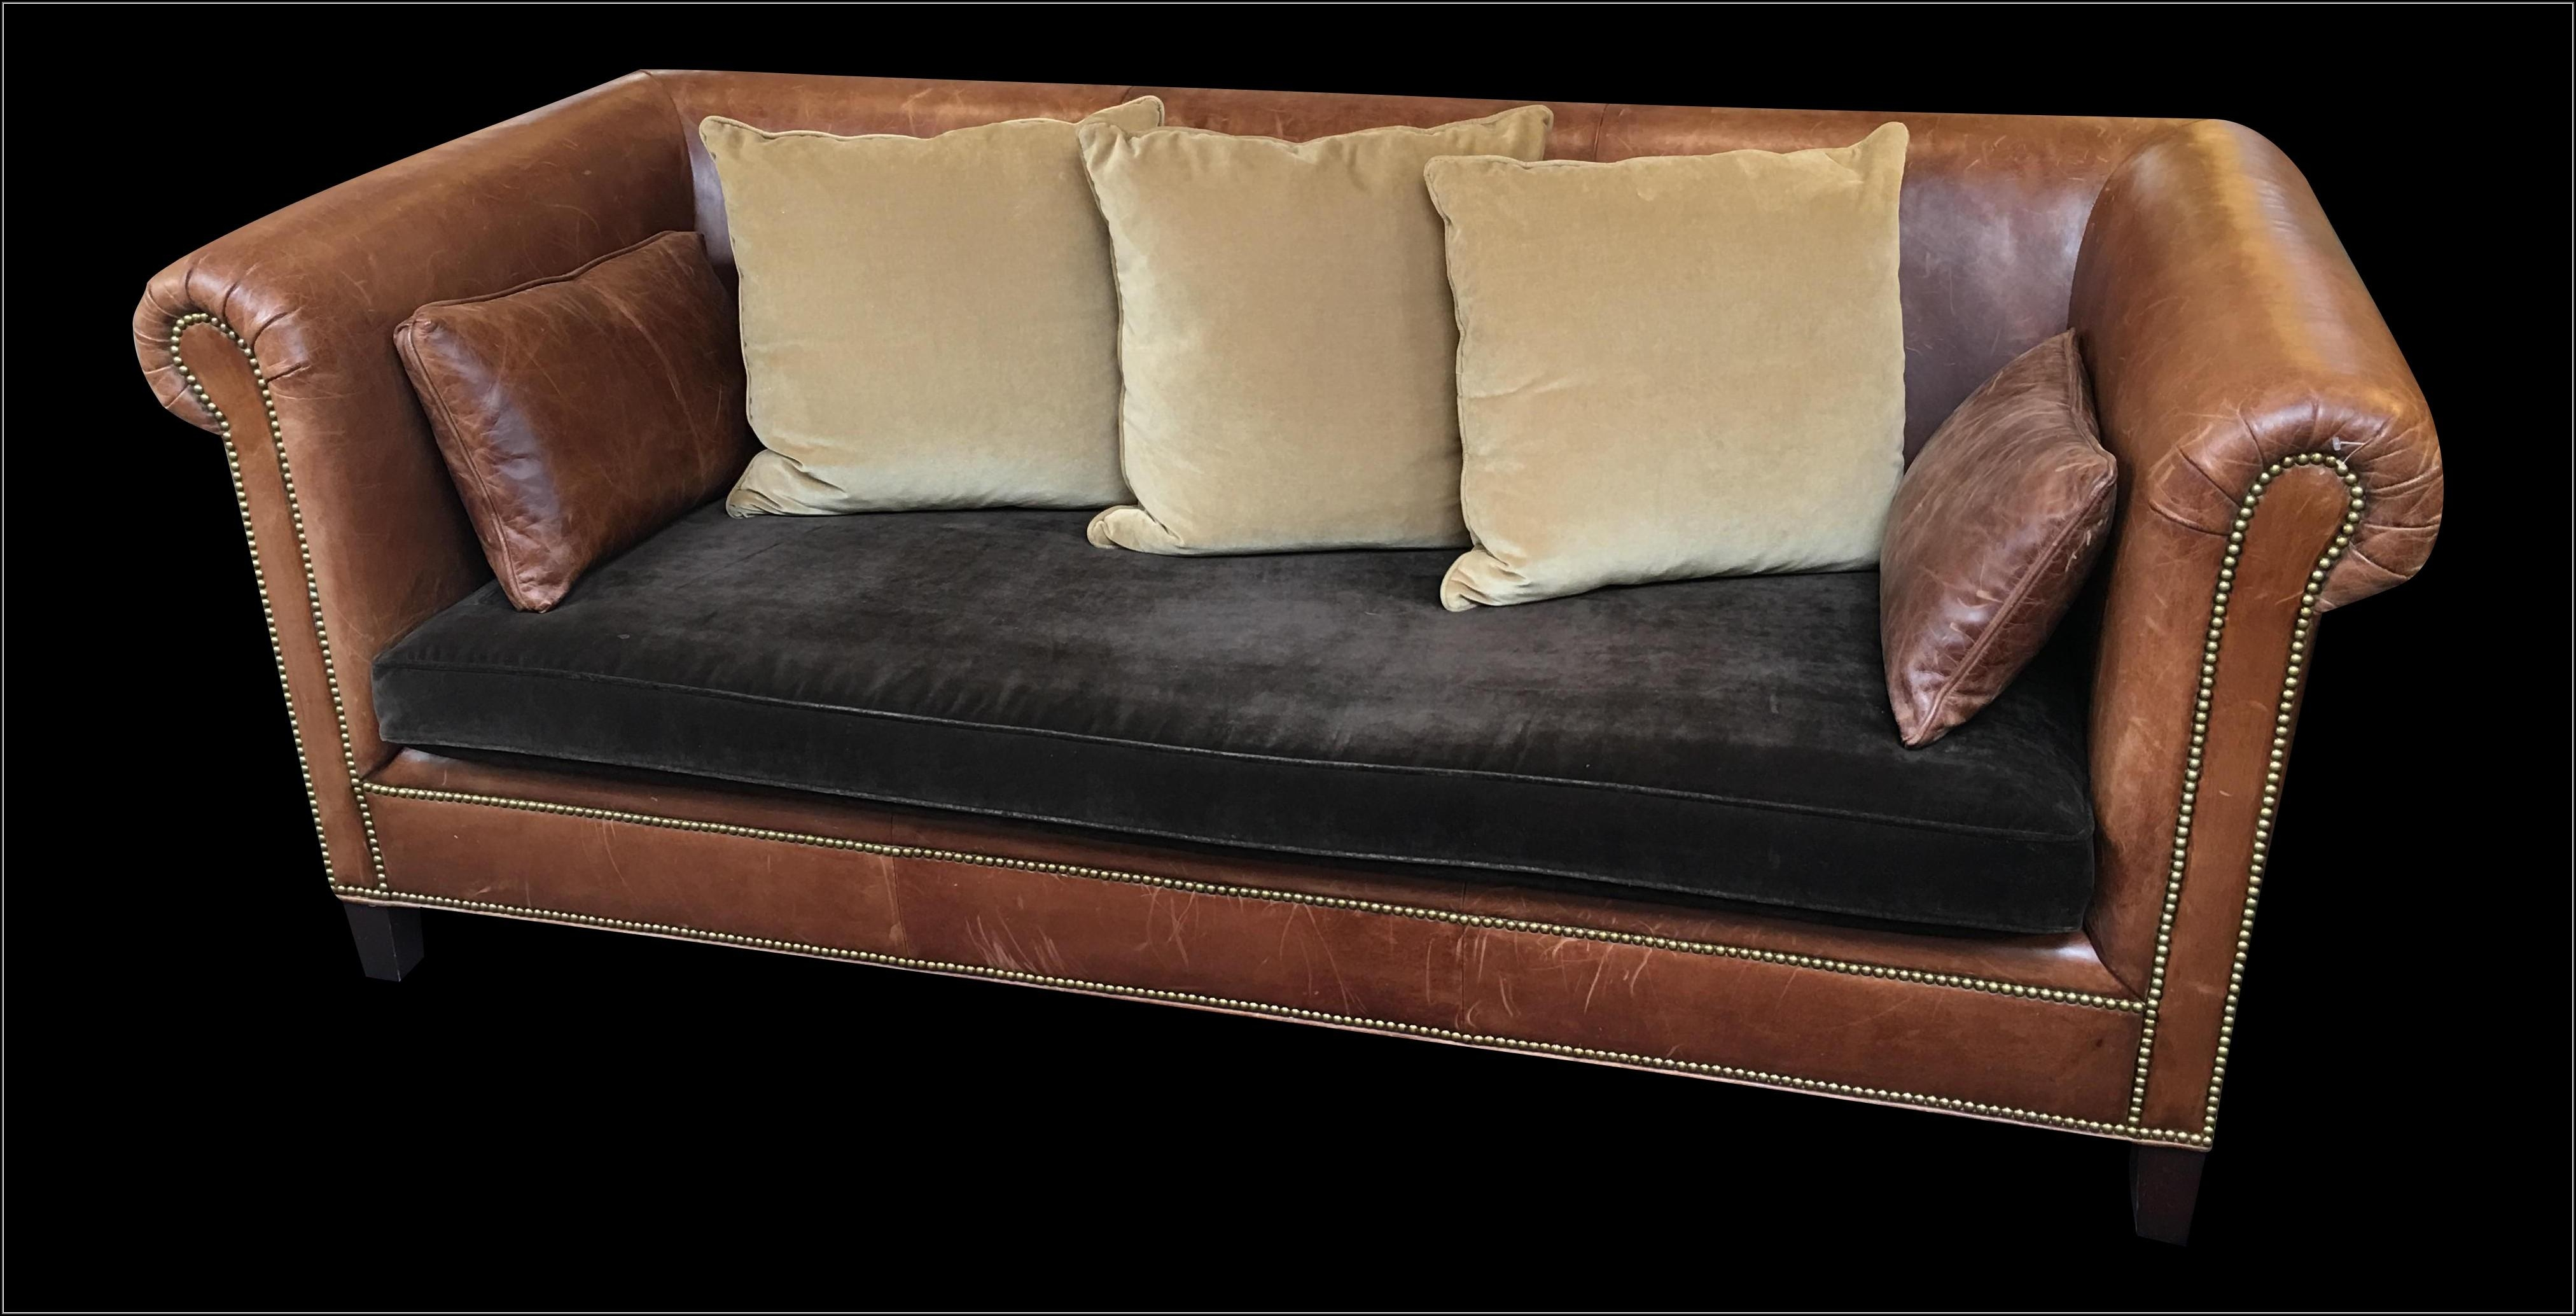 Ralph Lauren Brompton Leather Sofa – Sofa : Home Furniture Ideas With Regard To Brompton Leather Sofas (Image 15 of 20)